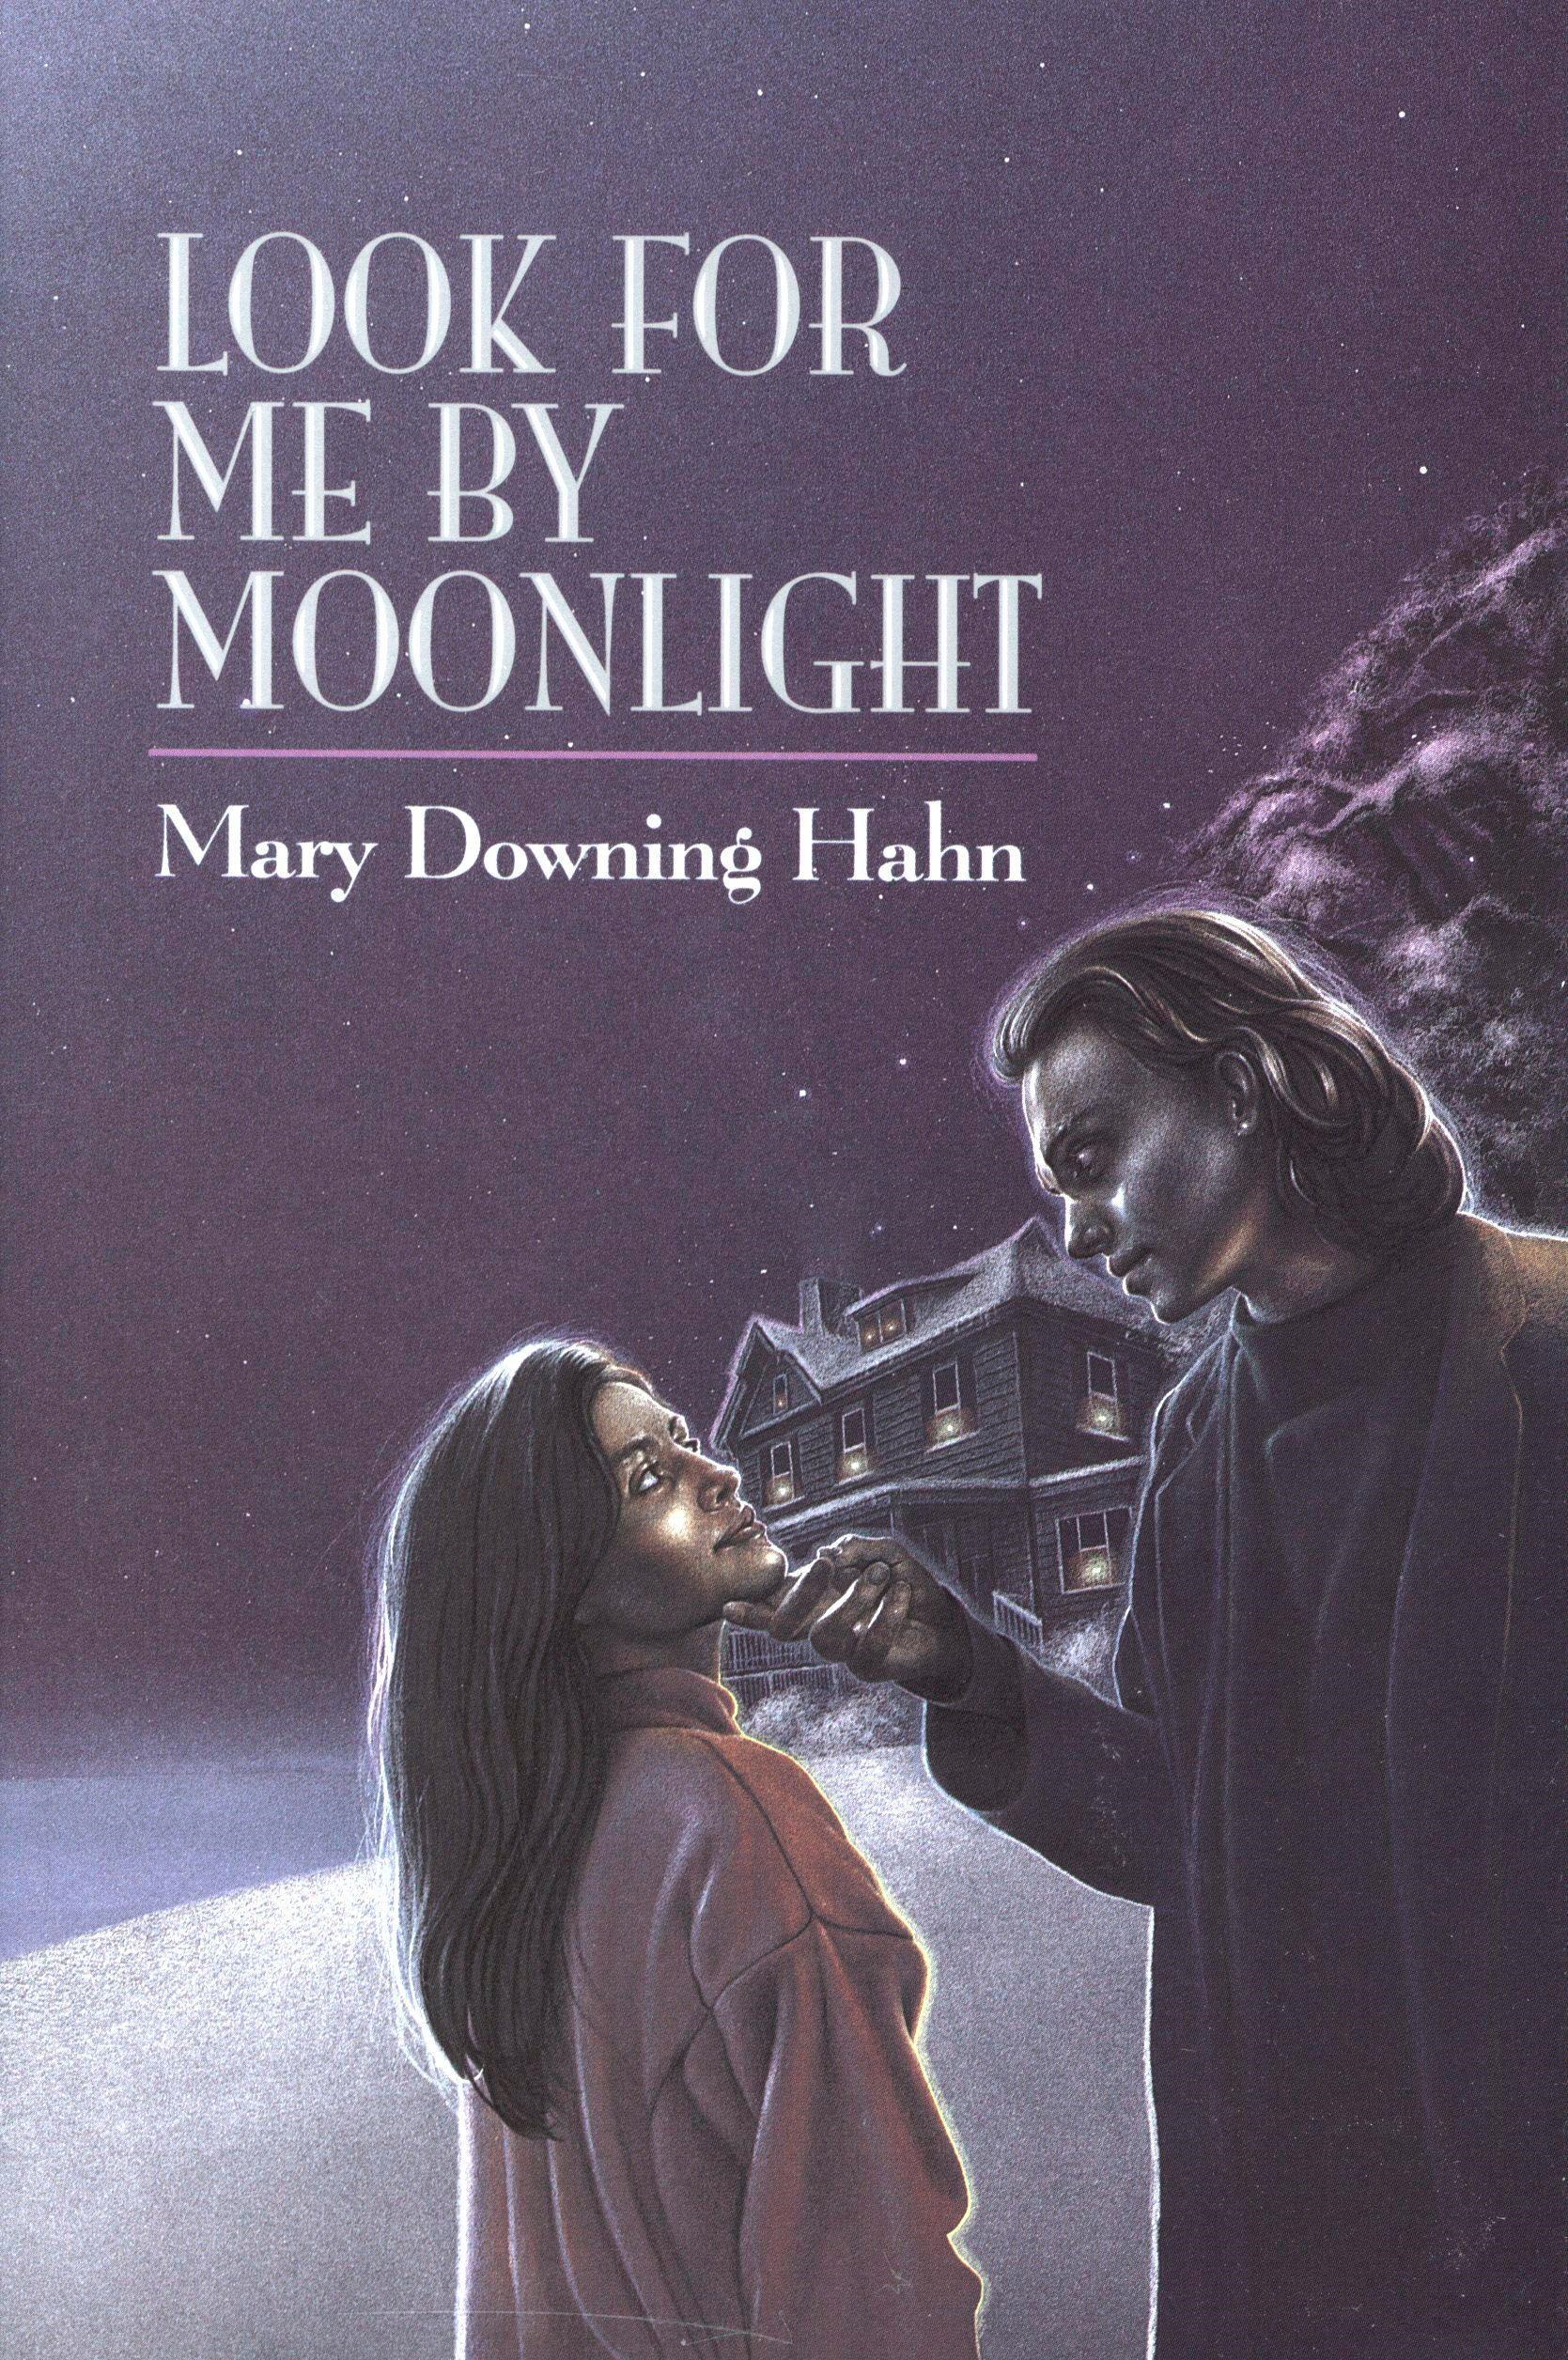 Look For Me By Moonlight By: Mary Downing Hahn